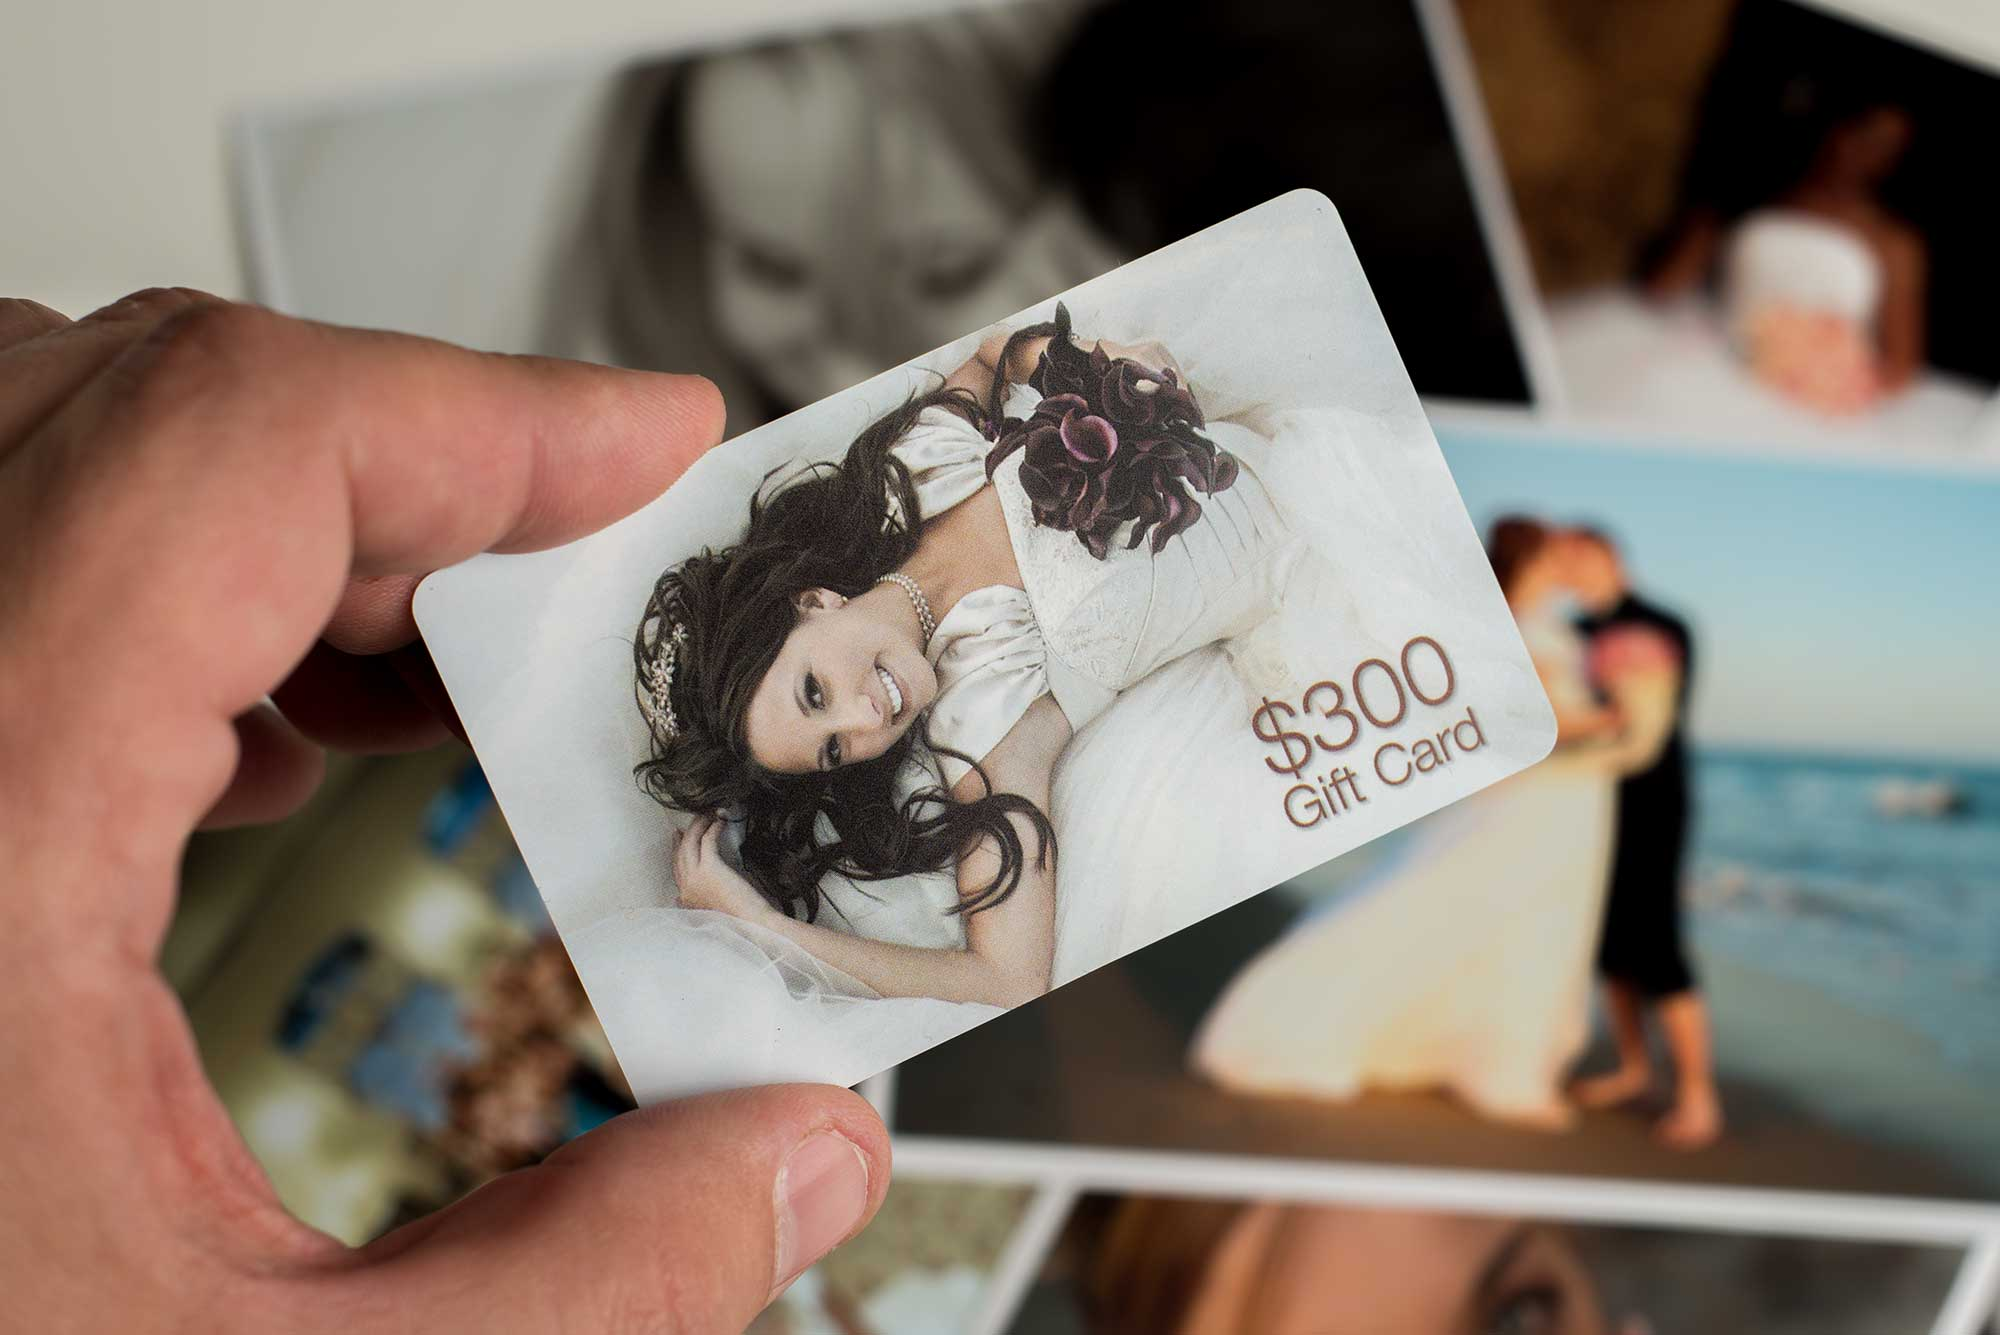 Wedding Gift Ideas For USD300 : Get Your Free USD300 Gift Card